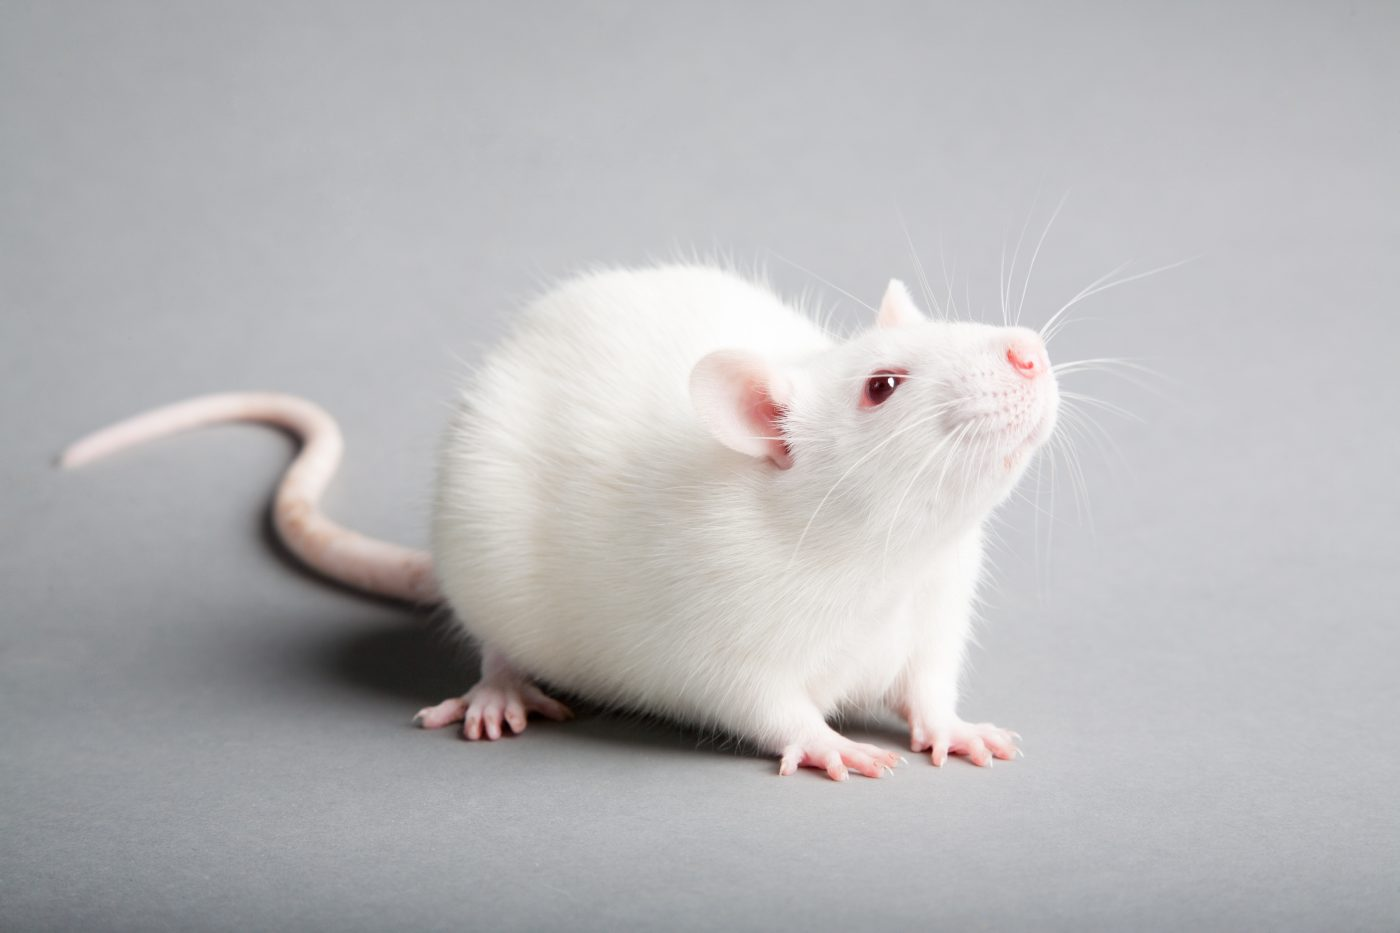 Pfizer's Inhibitor Drug Able to Reduce Neurodegeneration in Parkinson's Disease Animal Models